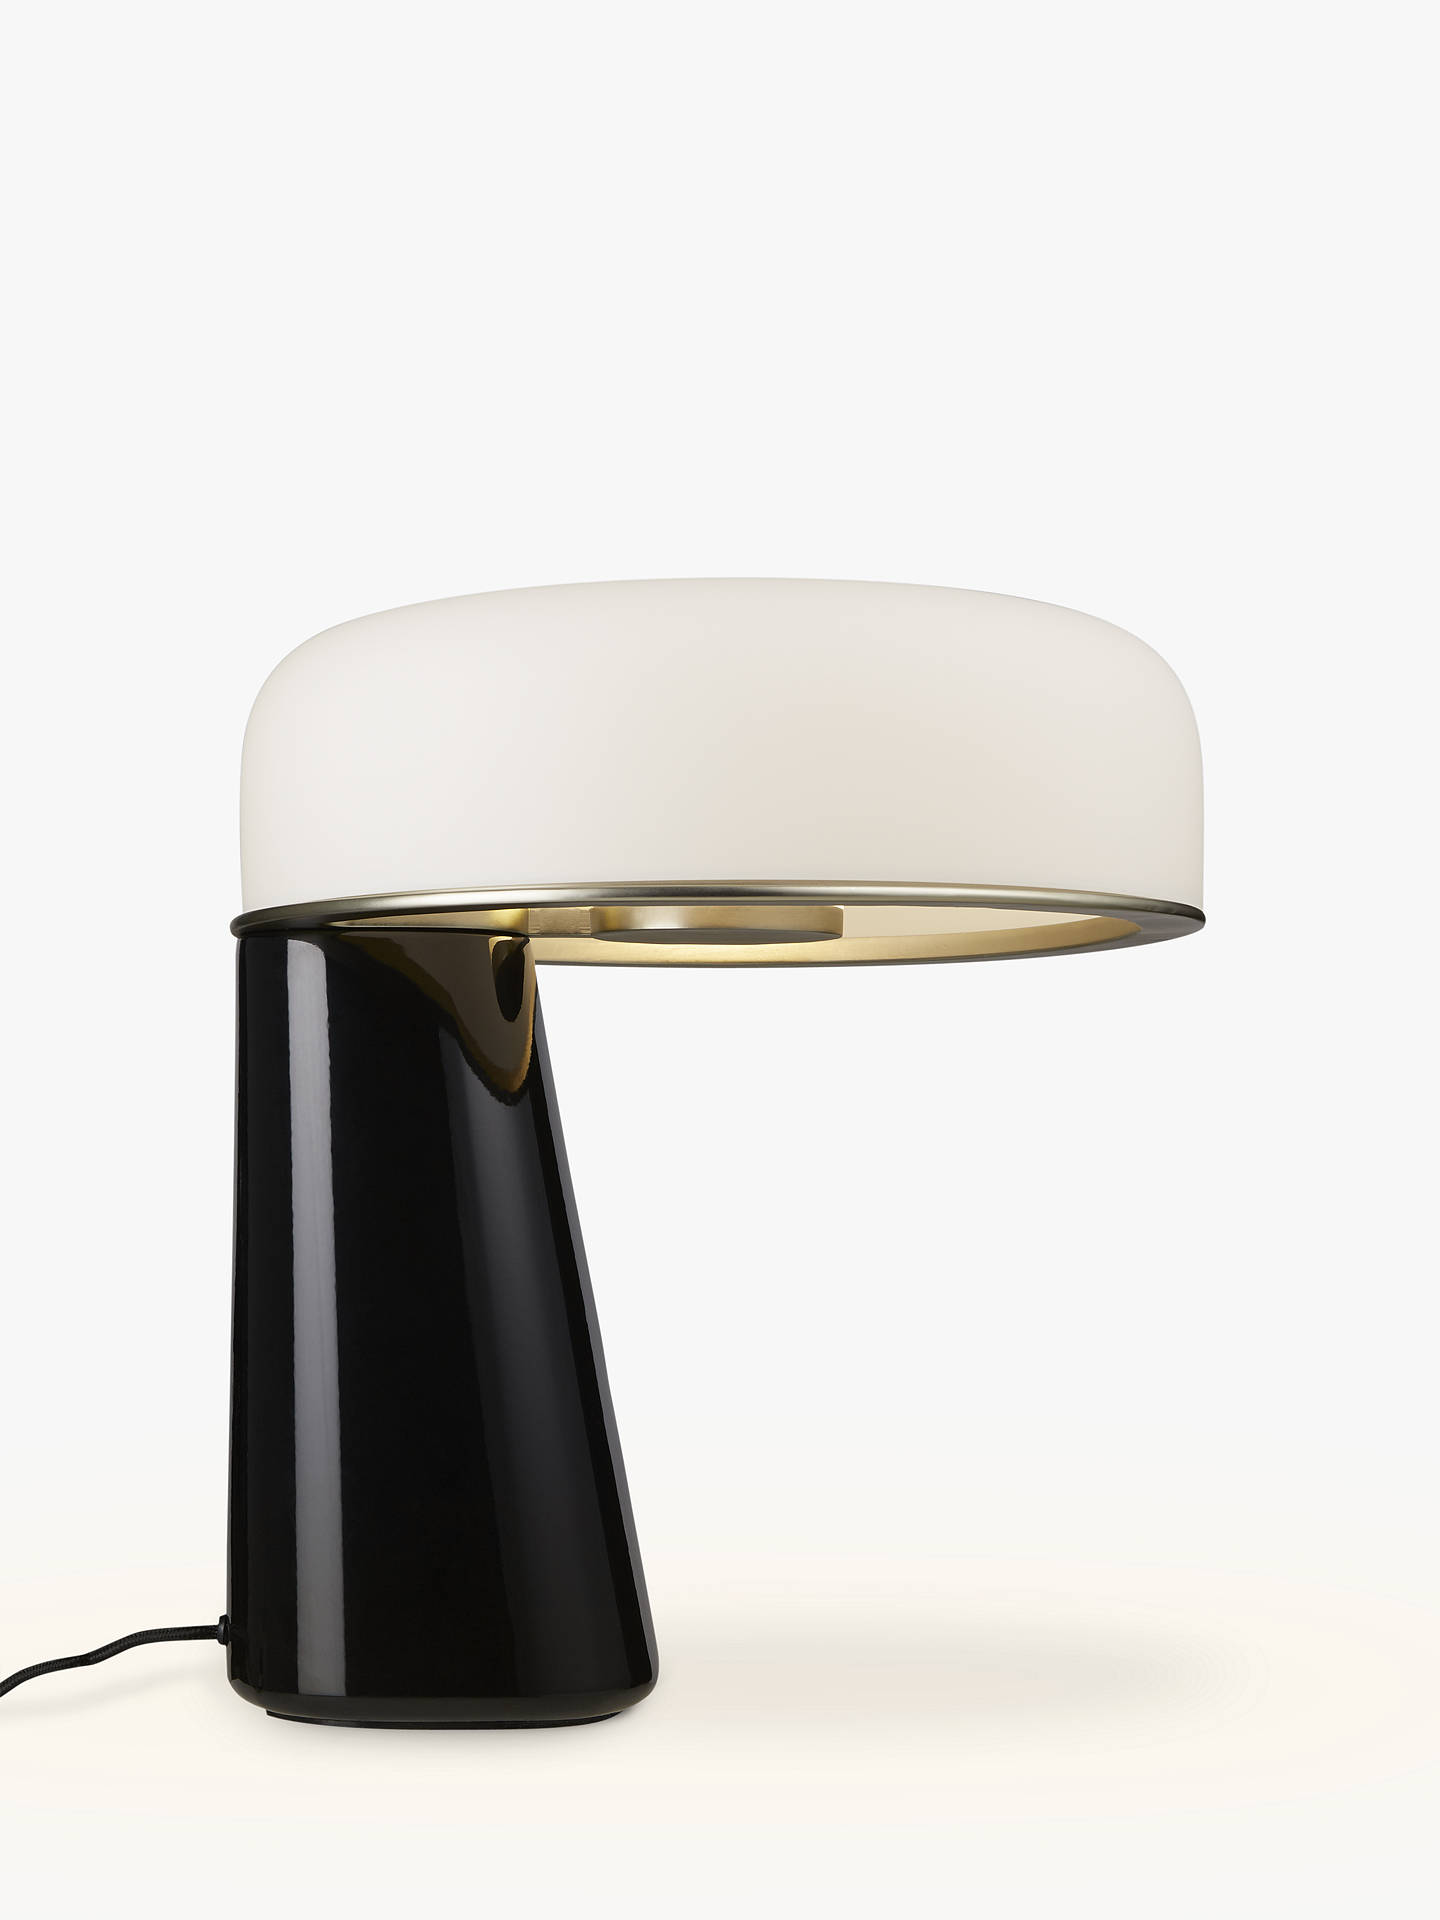 Doshi Levien For John Lewis Open Home Falcon Led Table Lamp Black